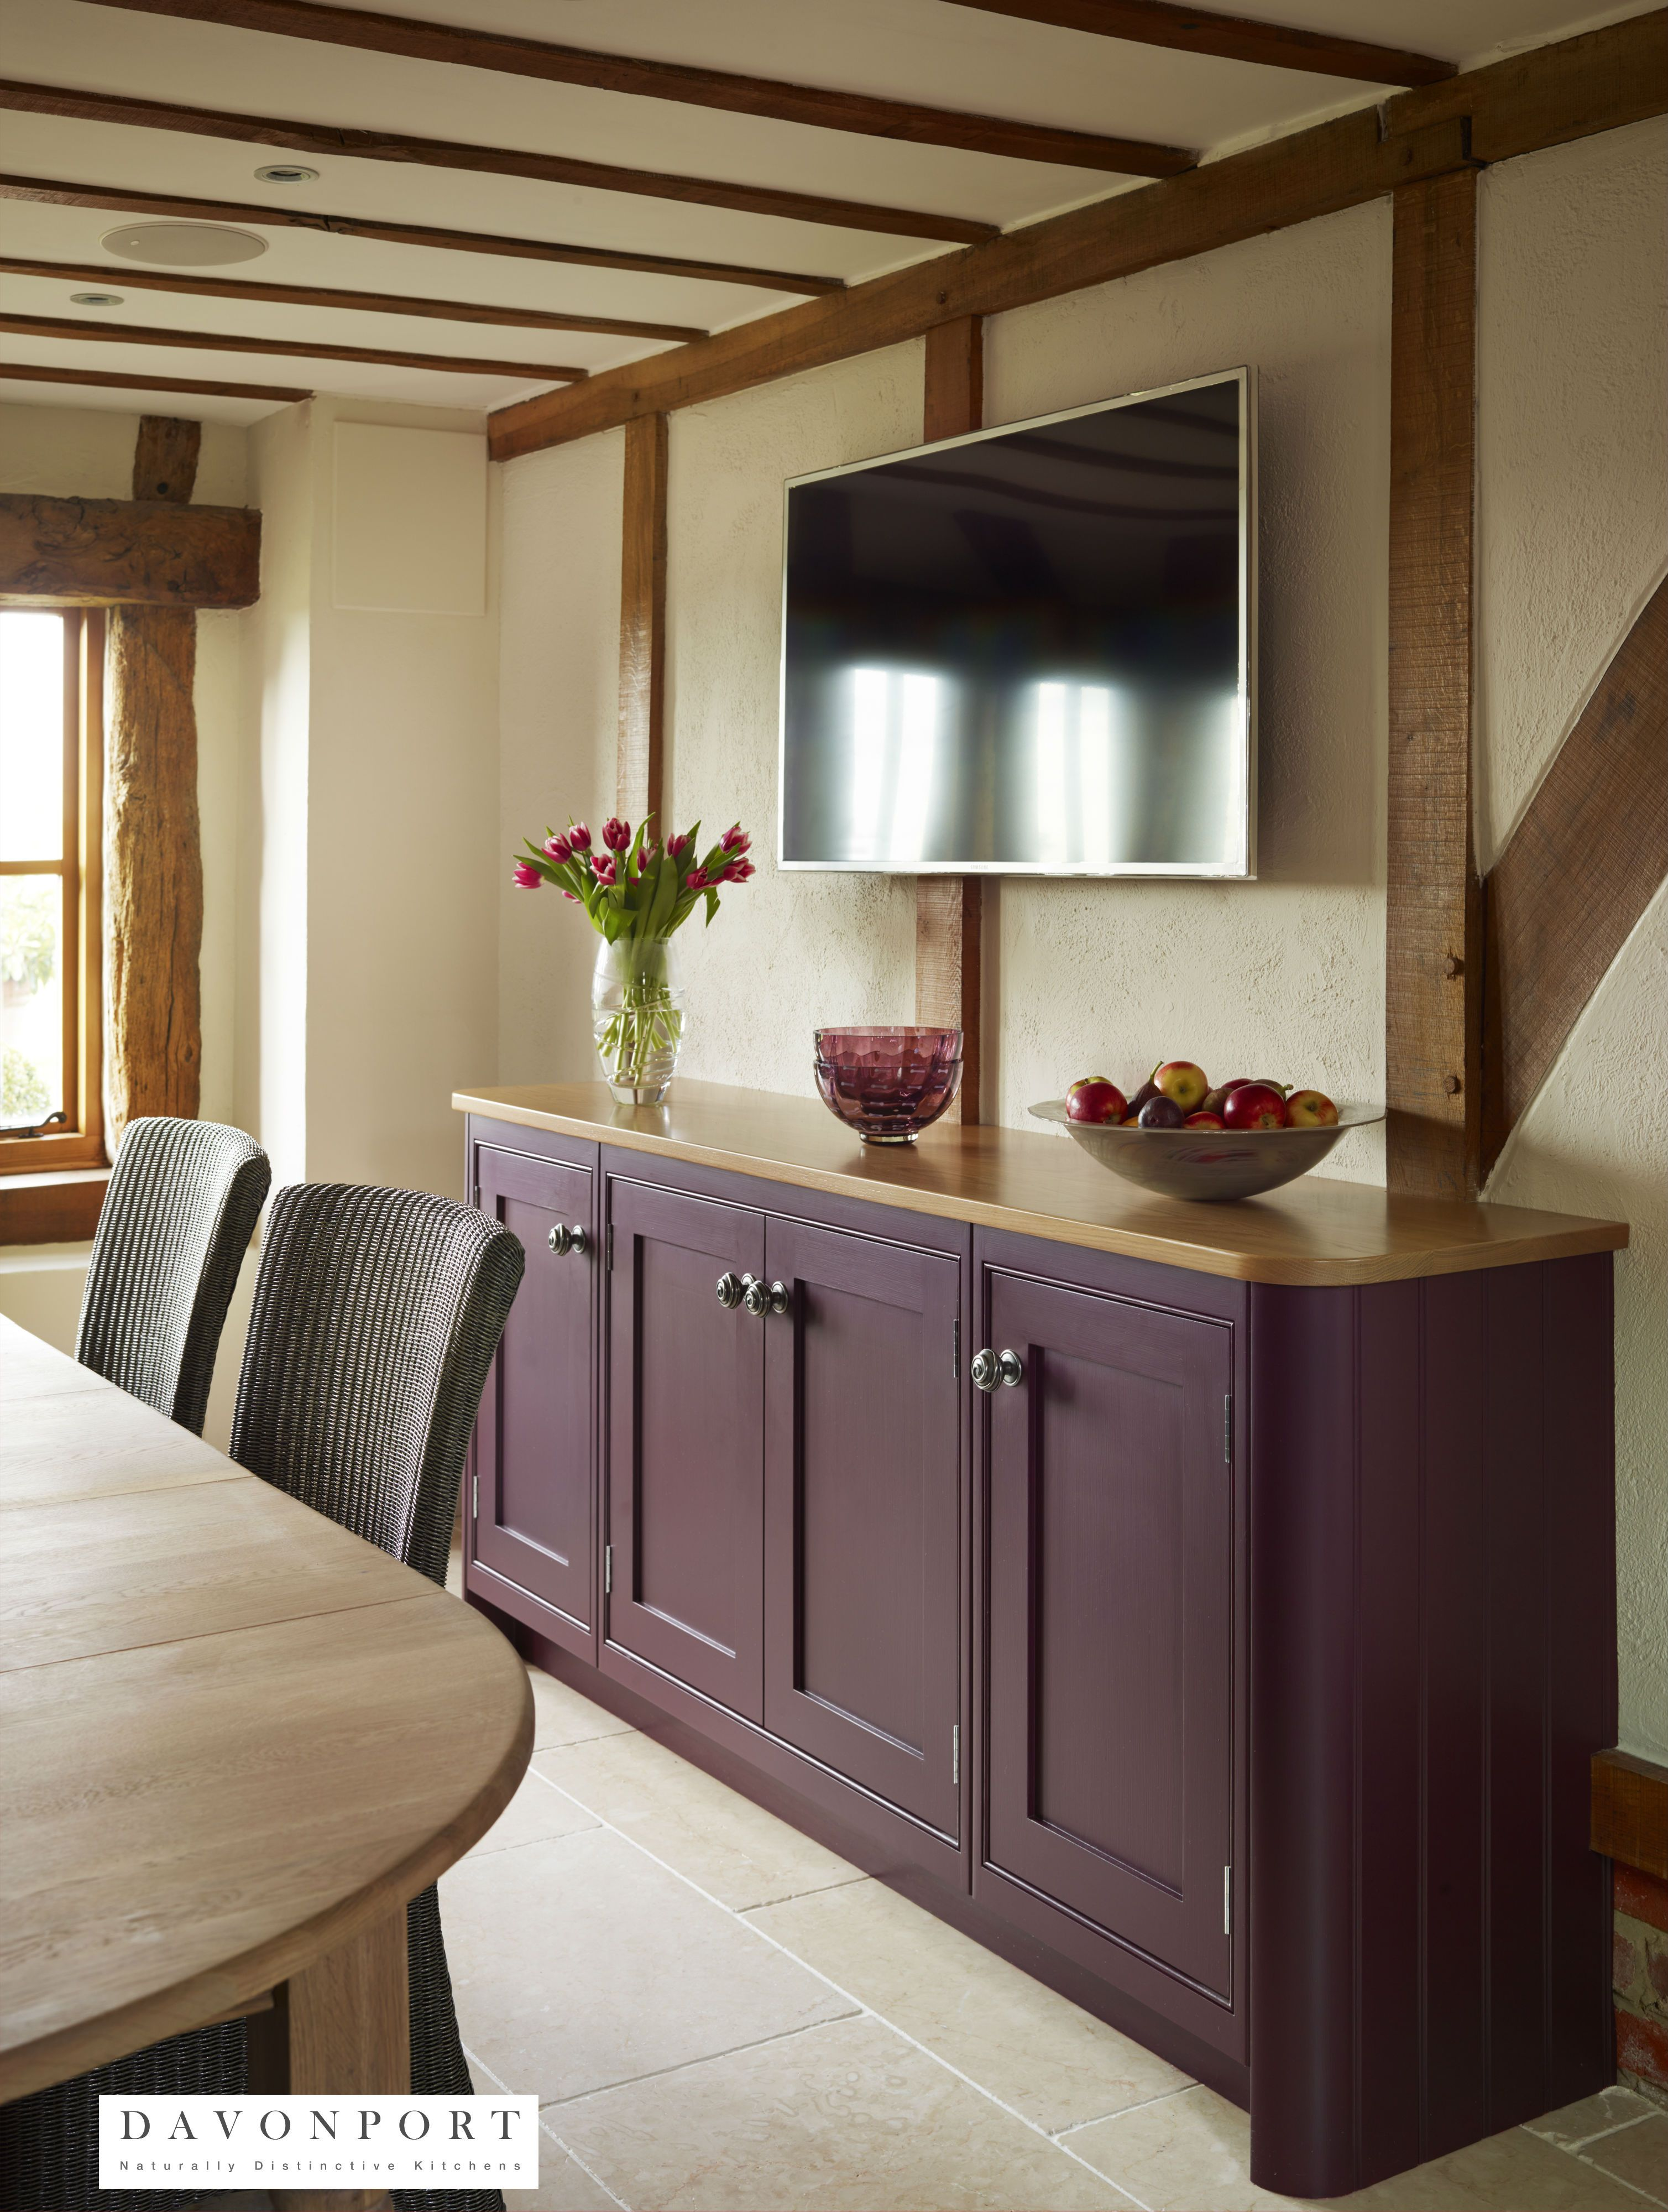 The Plum Media Unit In The Dining Area Of This Kitchen Design Contrasts  From The Cream